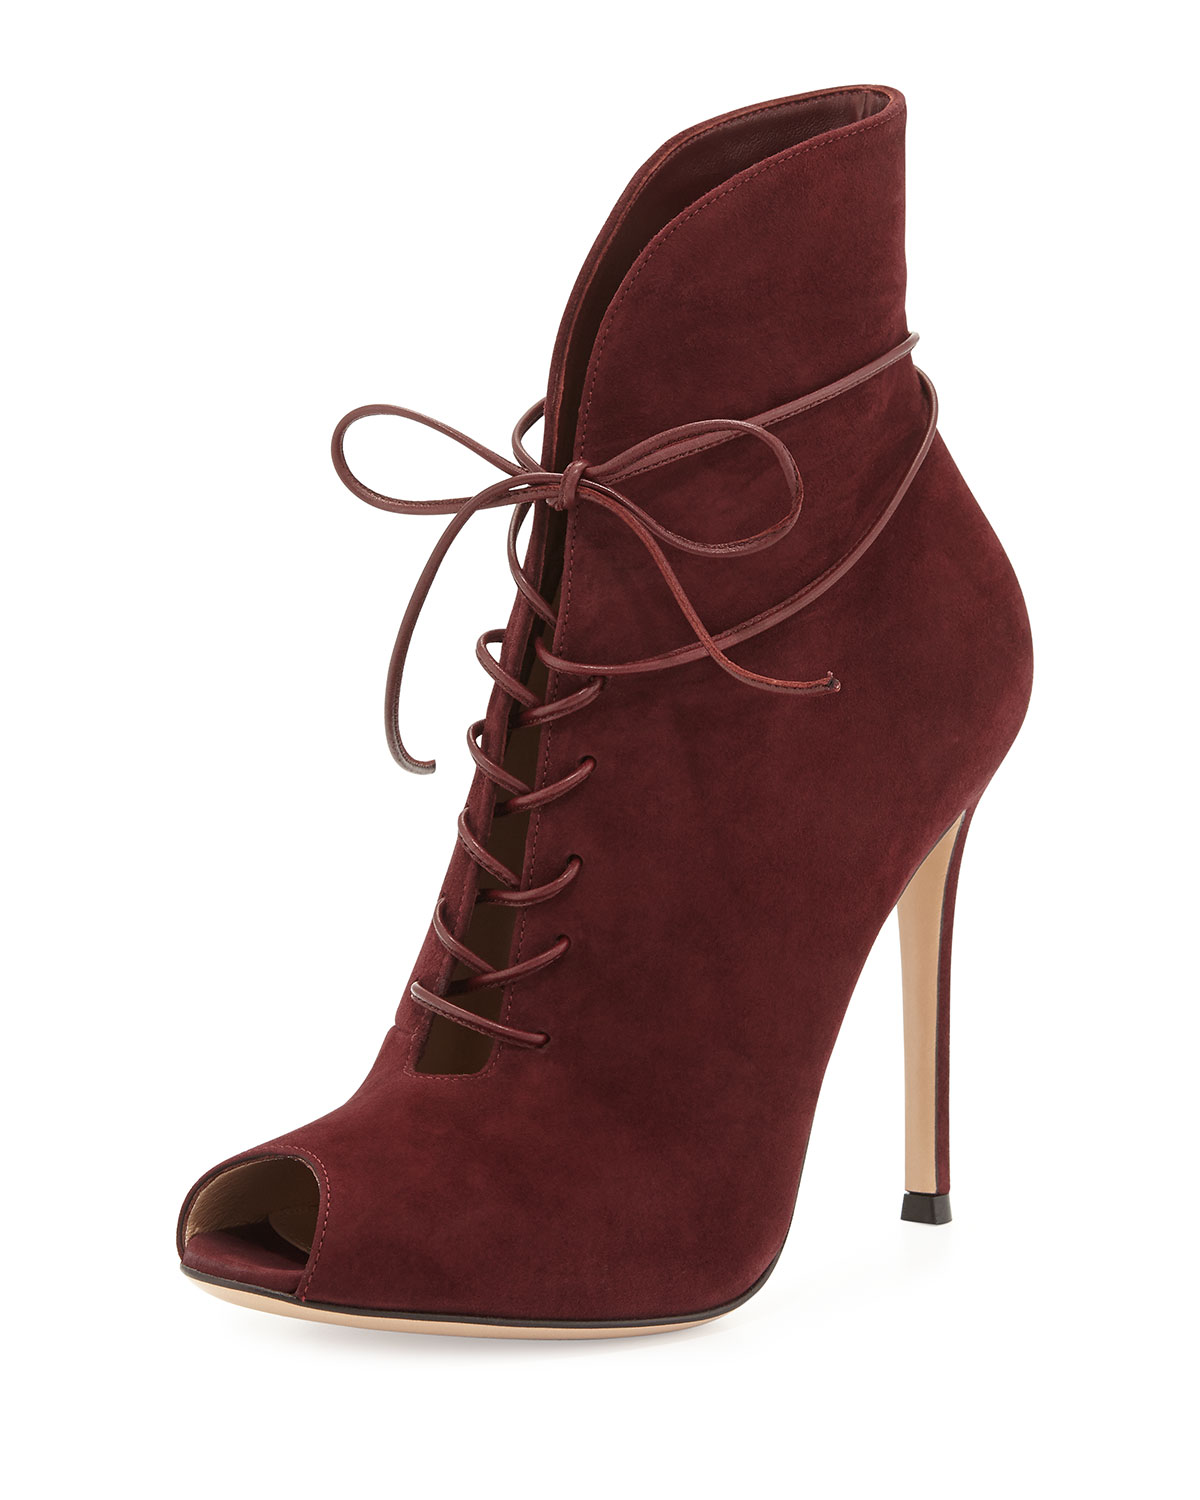 c4b9858f06fc Gianvito Rossi Suede Peep-Toe Lace-Up Bootie